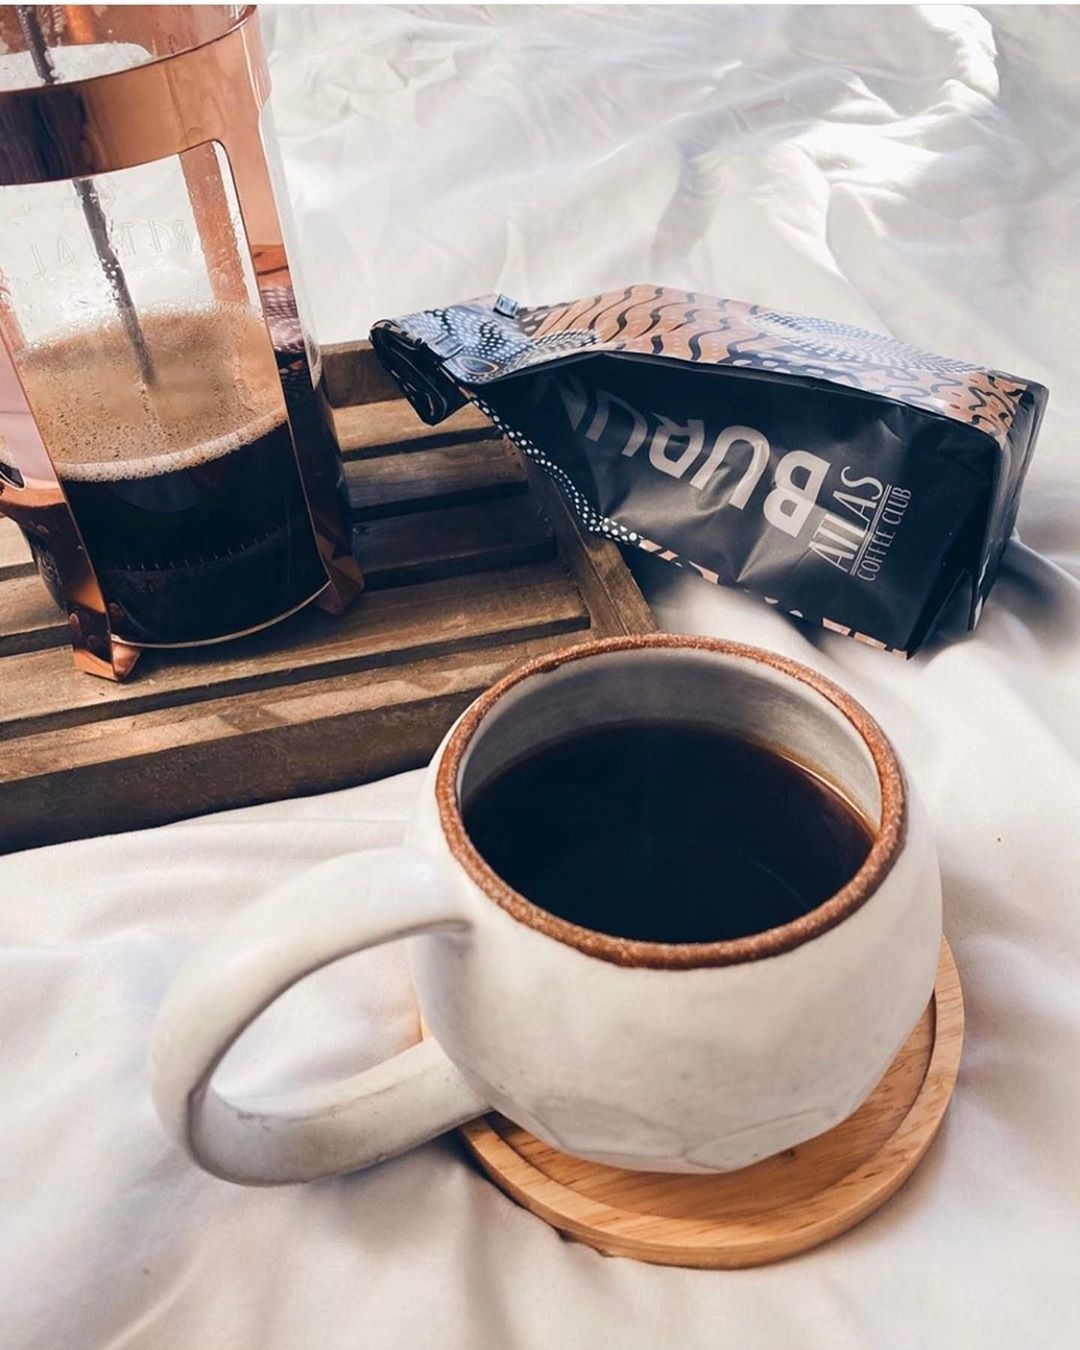 A cup of brewed coffee next to a french press